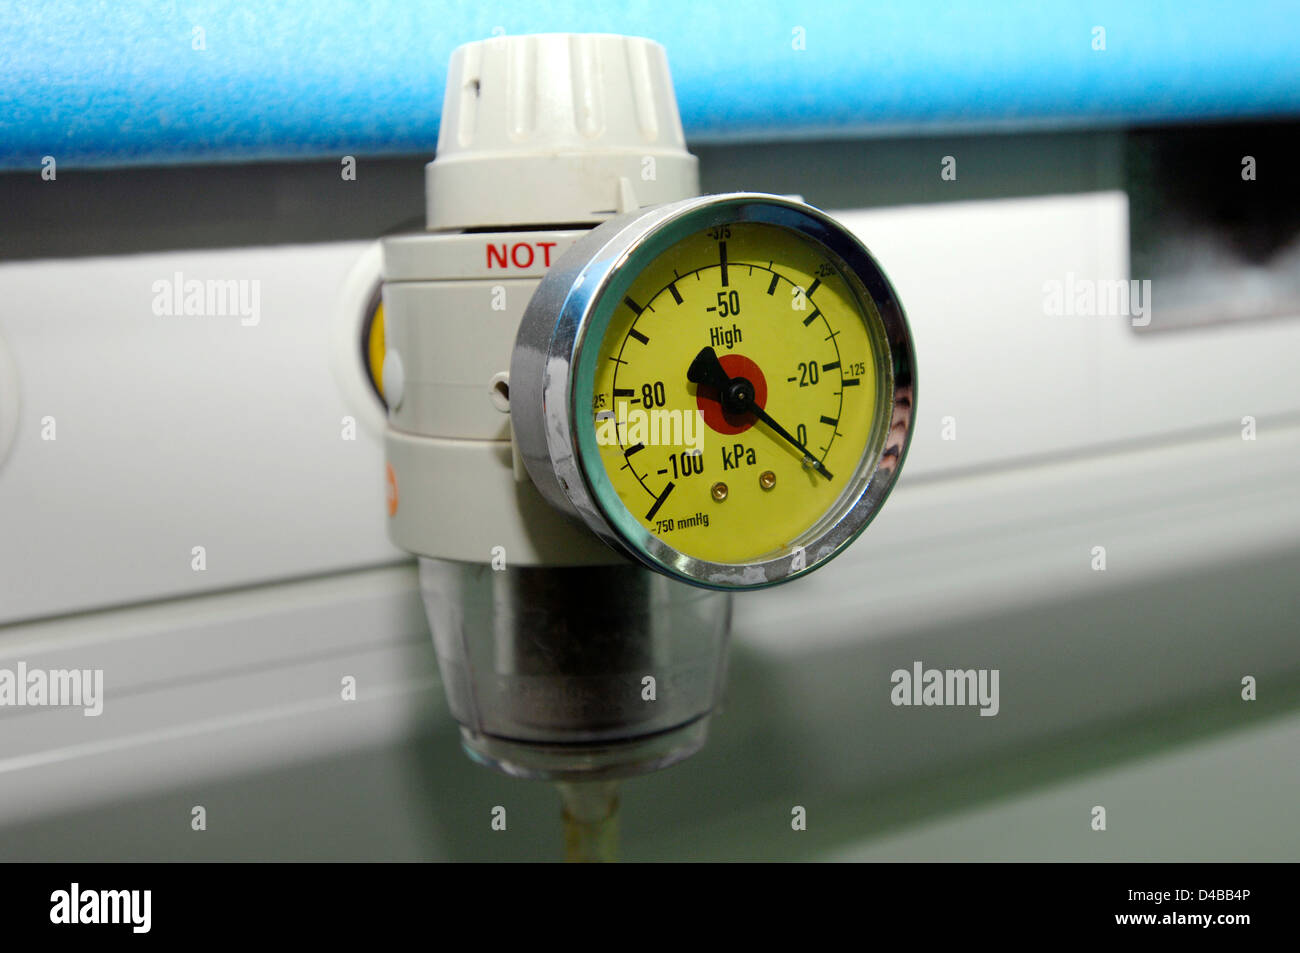 The regulator allows nursing staff manually control pressure (measured in kilo pascals) medical gases administered - Stock Image